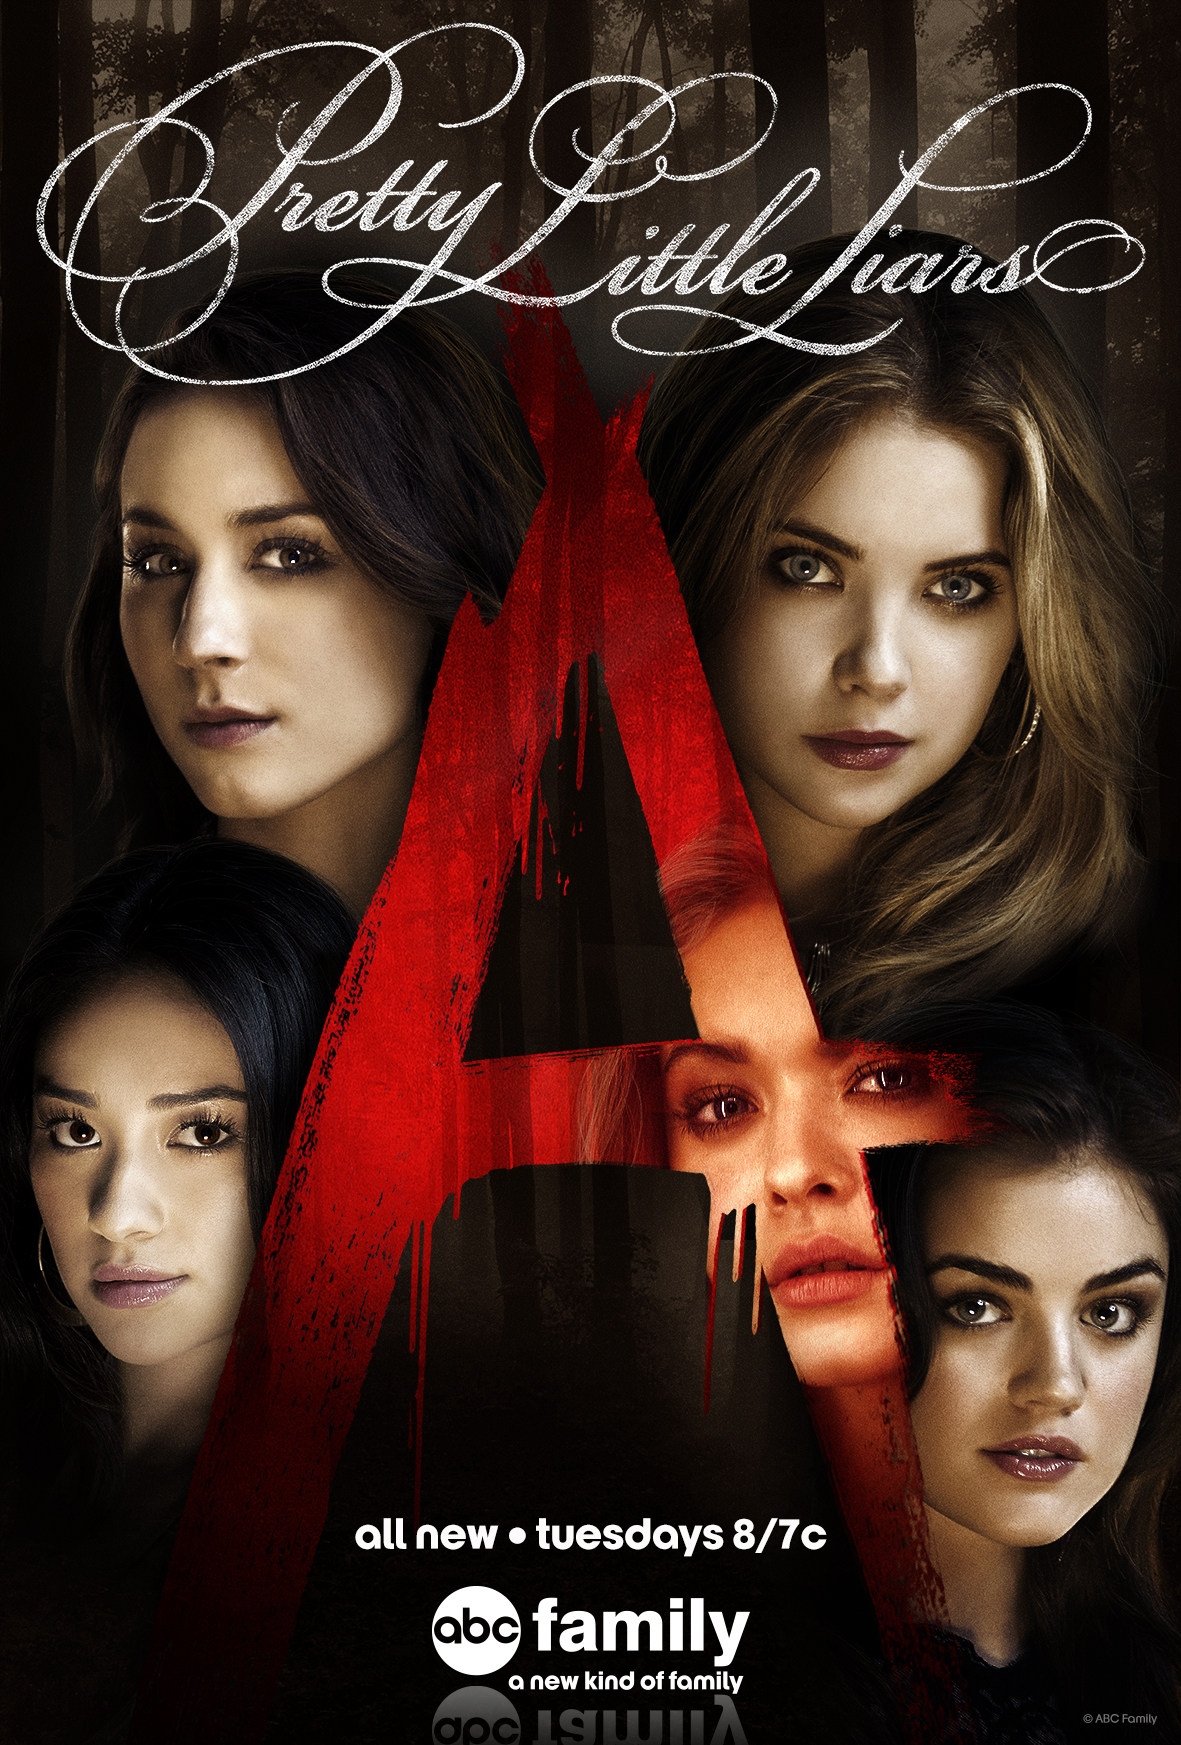 How does pretty little liars effect its viewers?